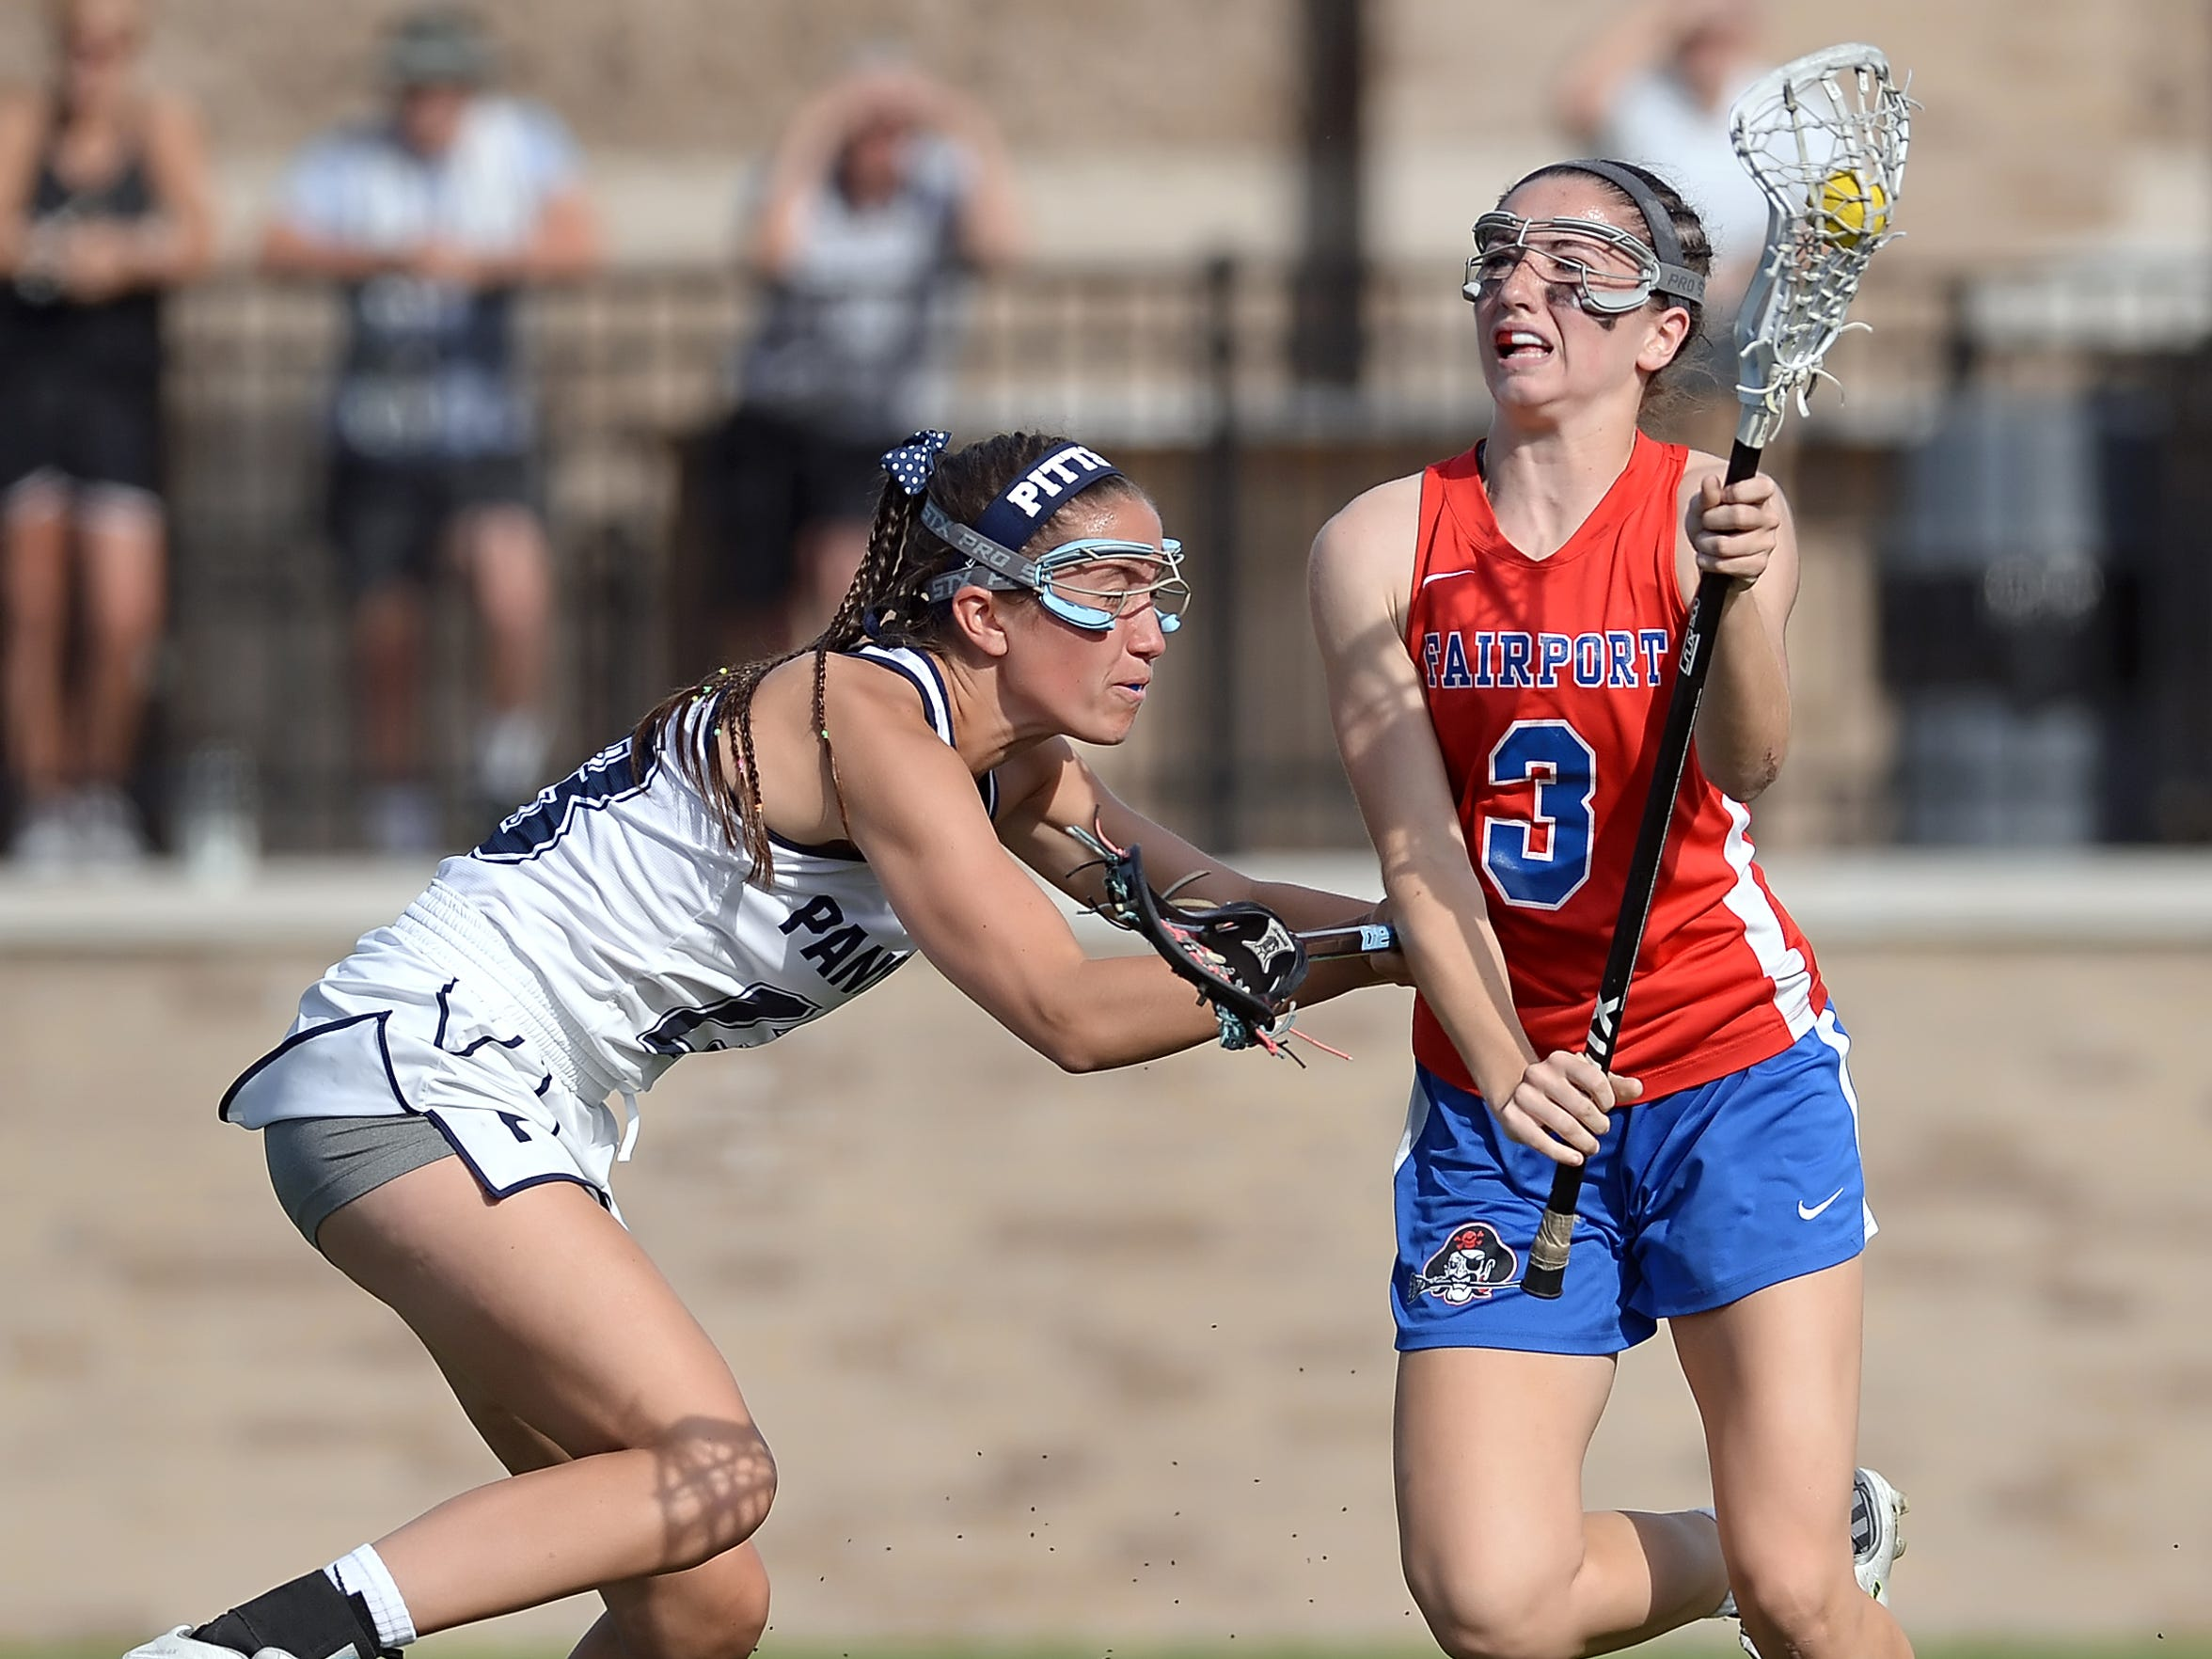 Fairport's Maddie Howe, right, is defended by Pittsford's